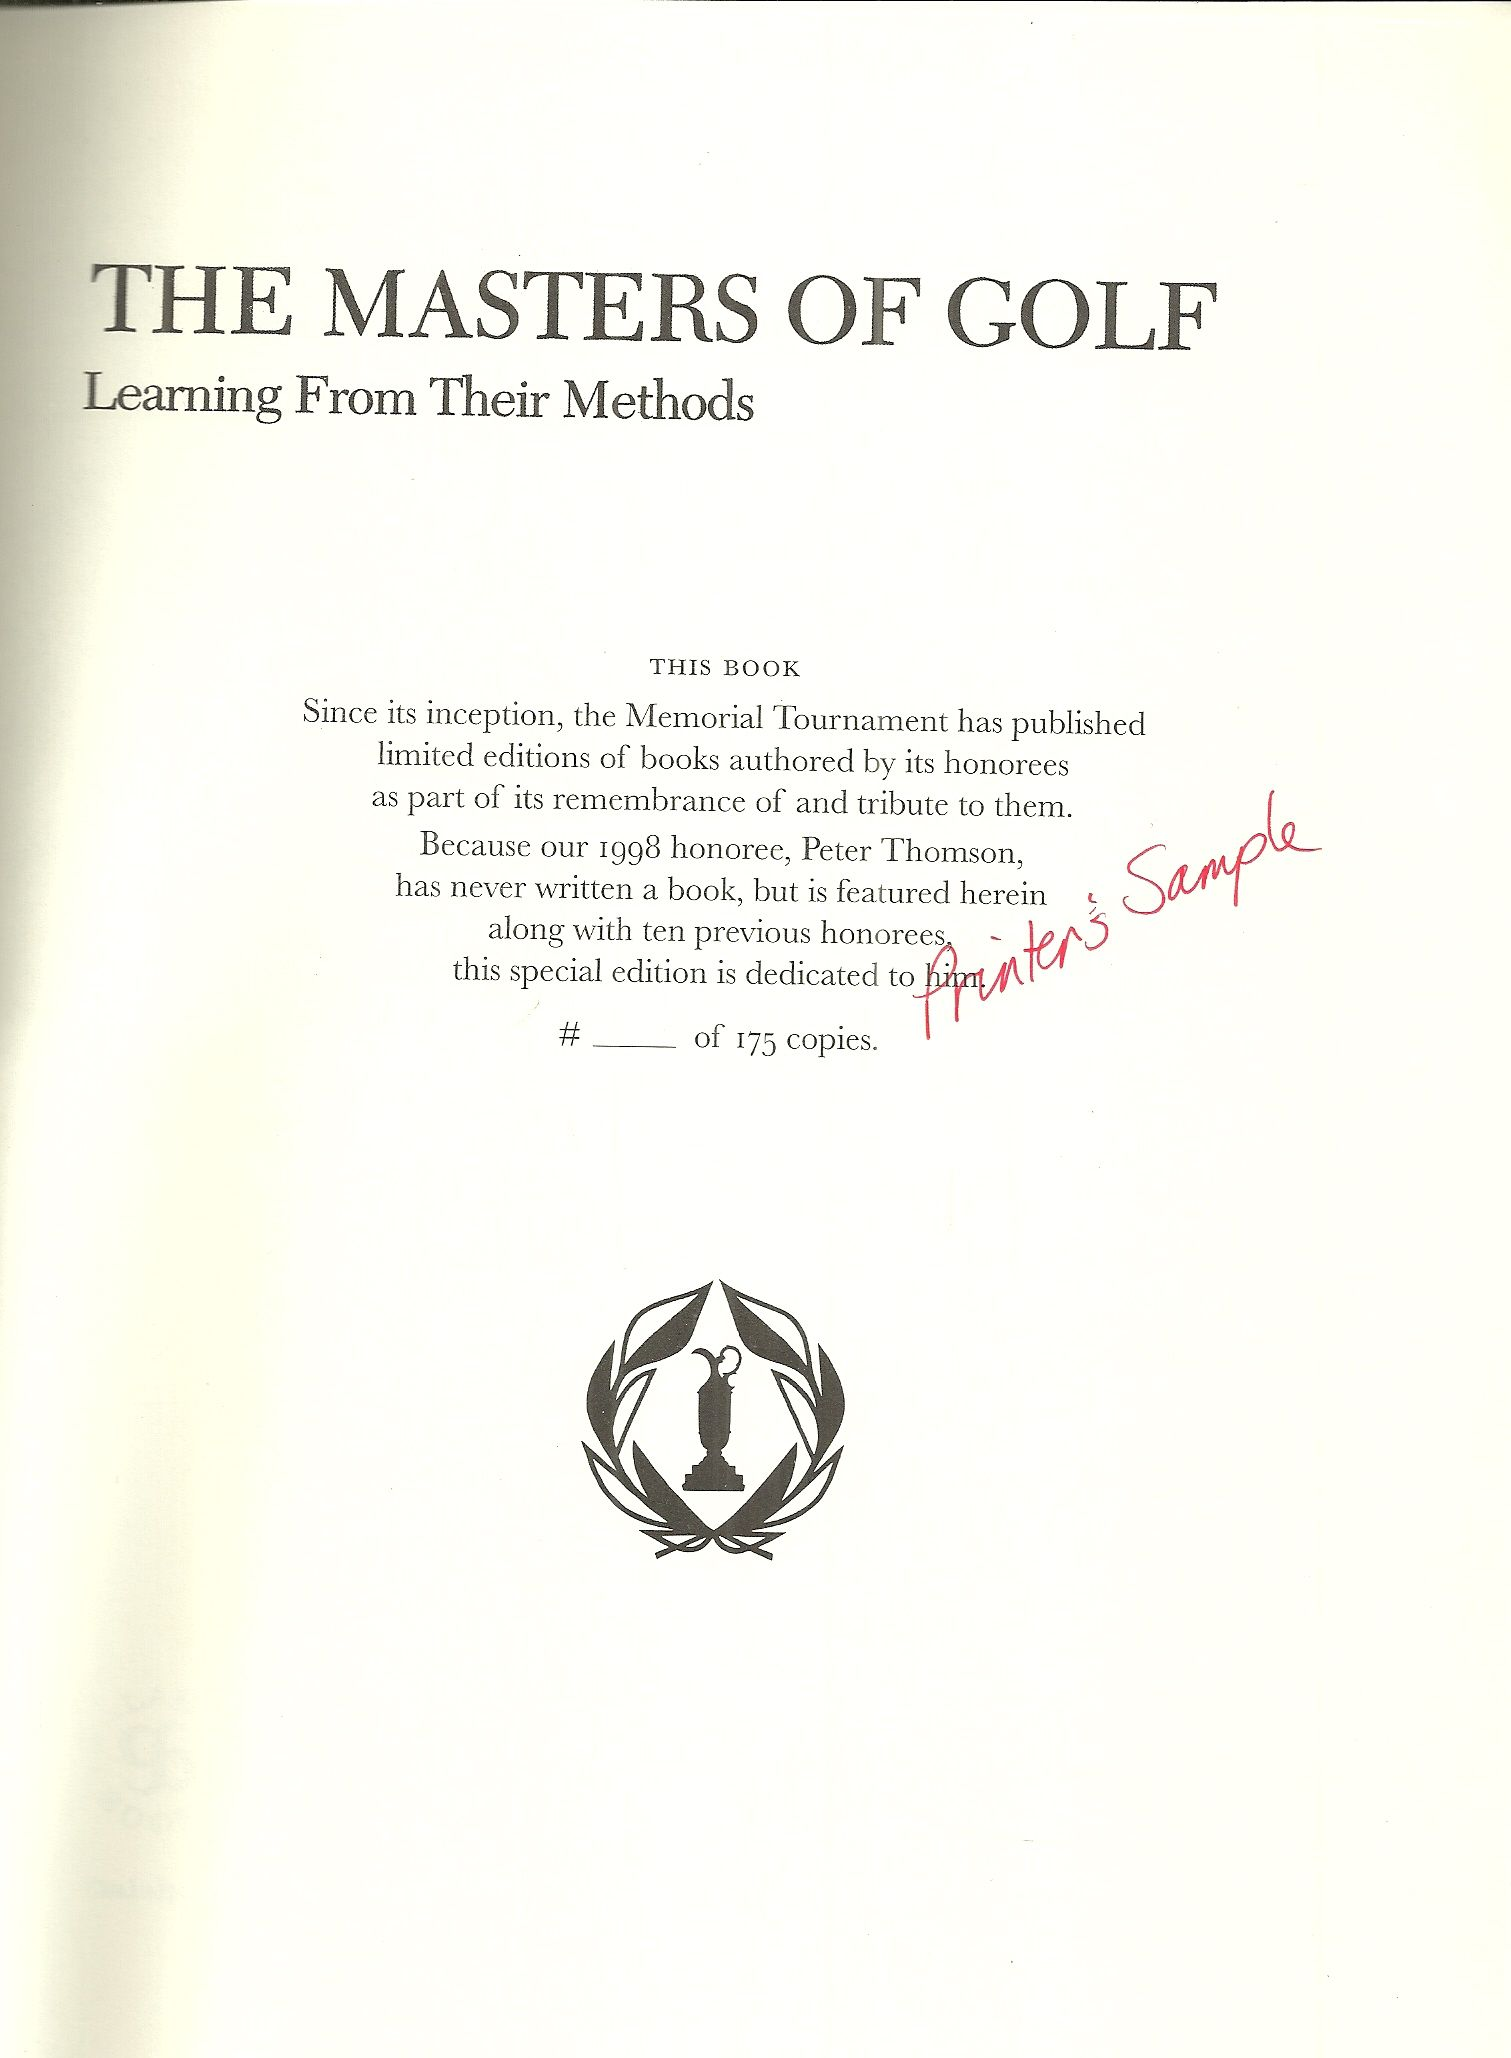 The Masters of Golf: Learning from Their Methods (Memorial Tournament 1998 Honoring Peter Thomason edition), Dick Aultman & Ken Bowden